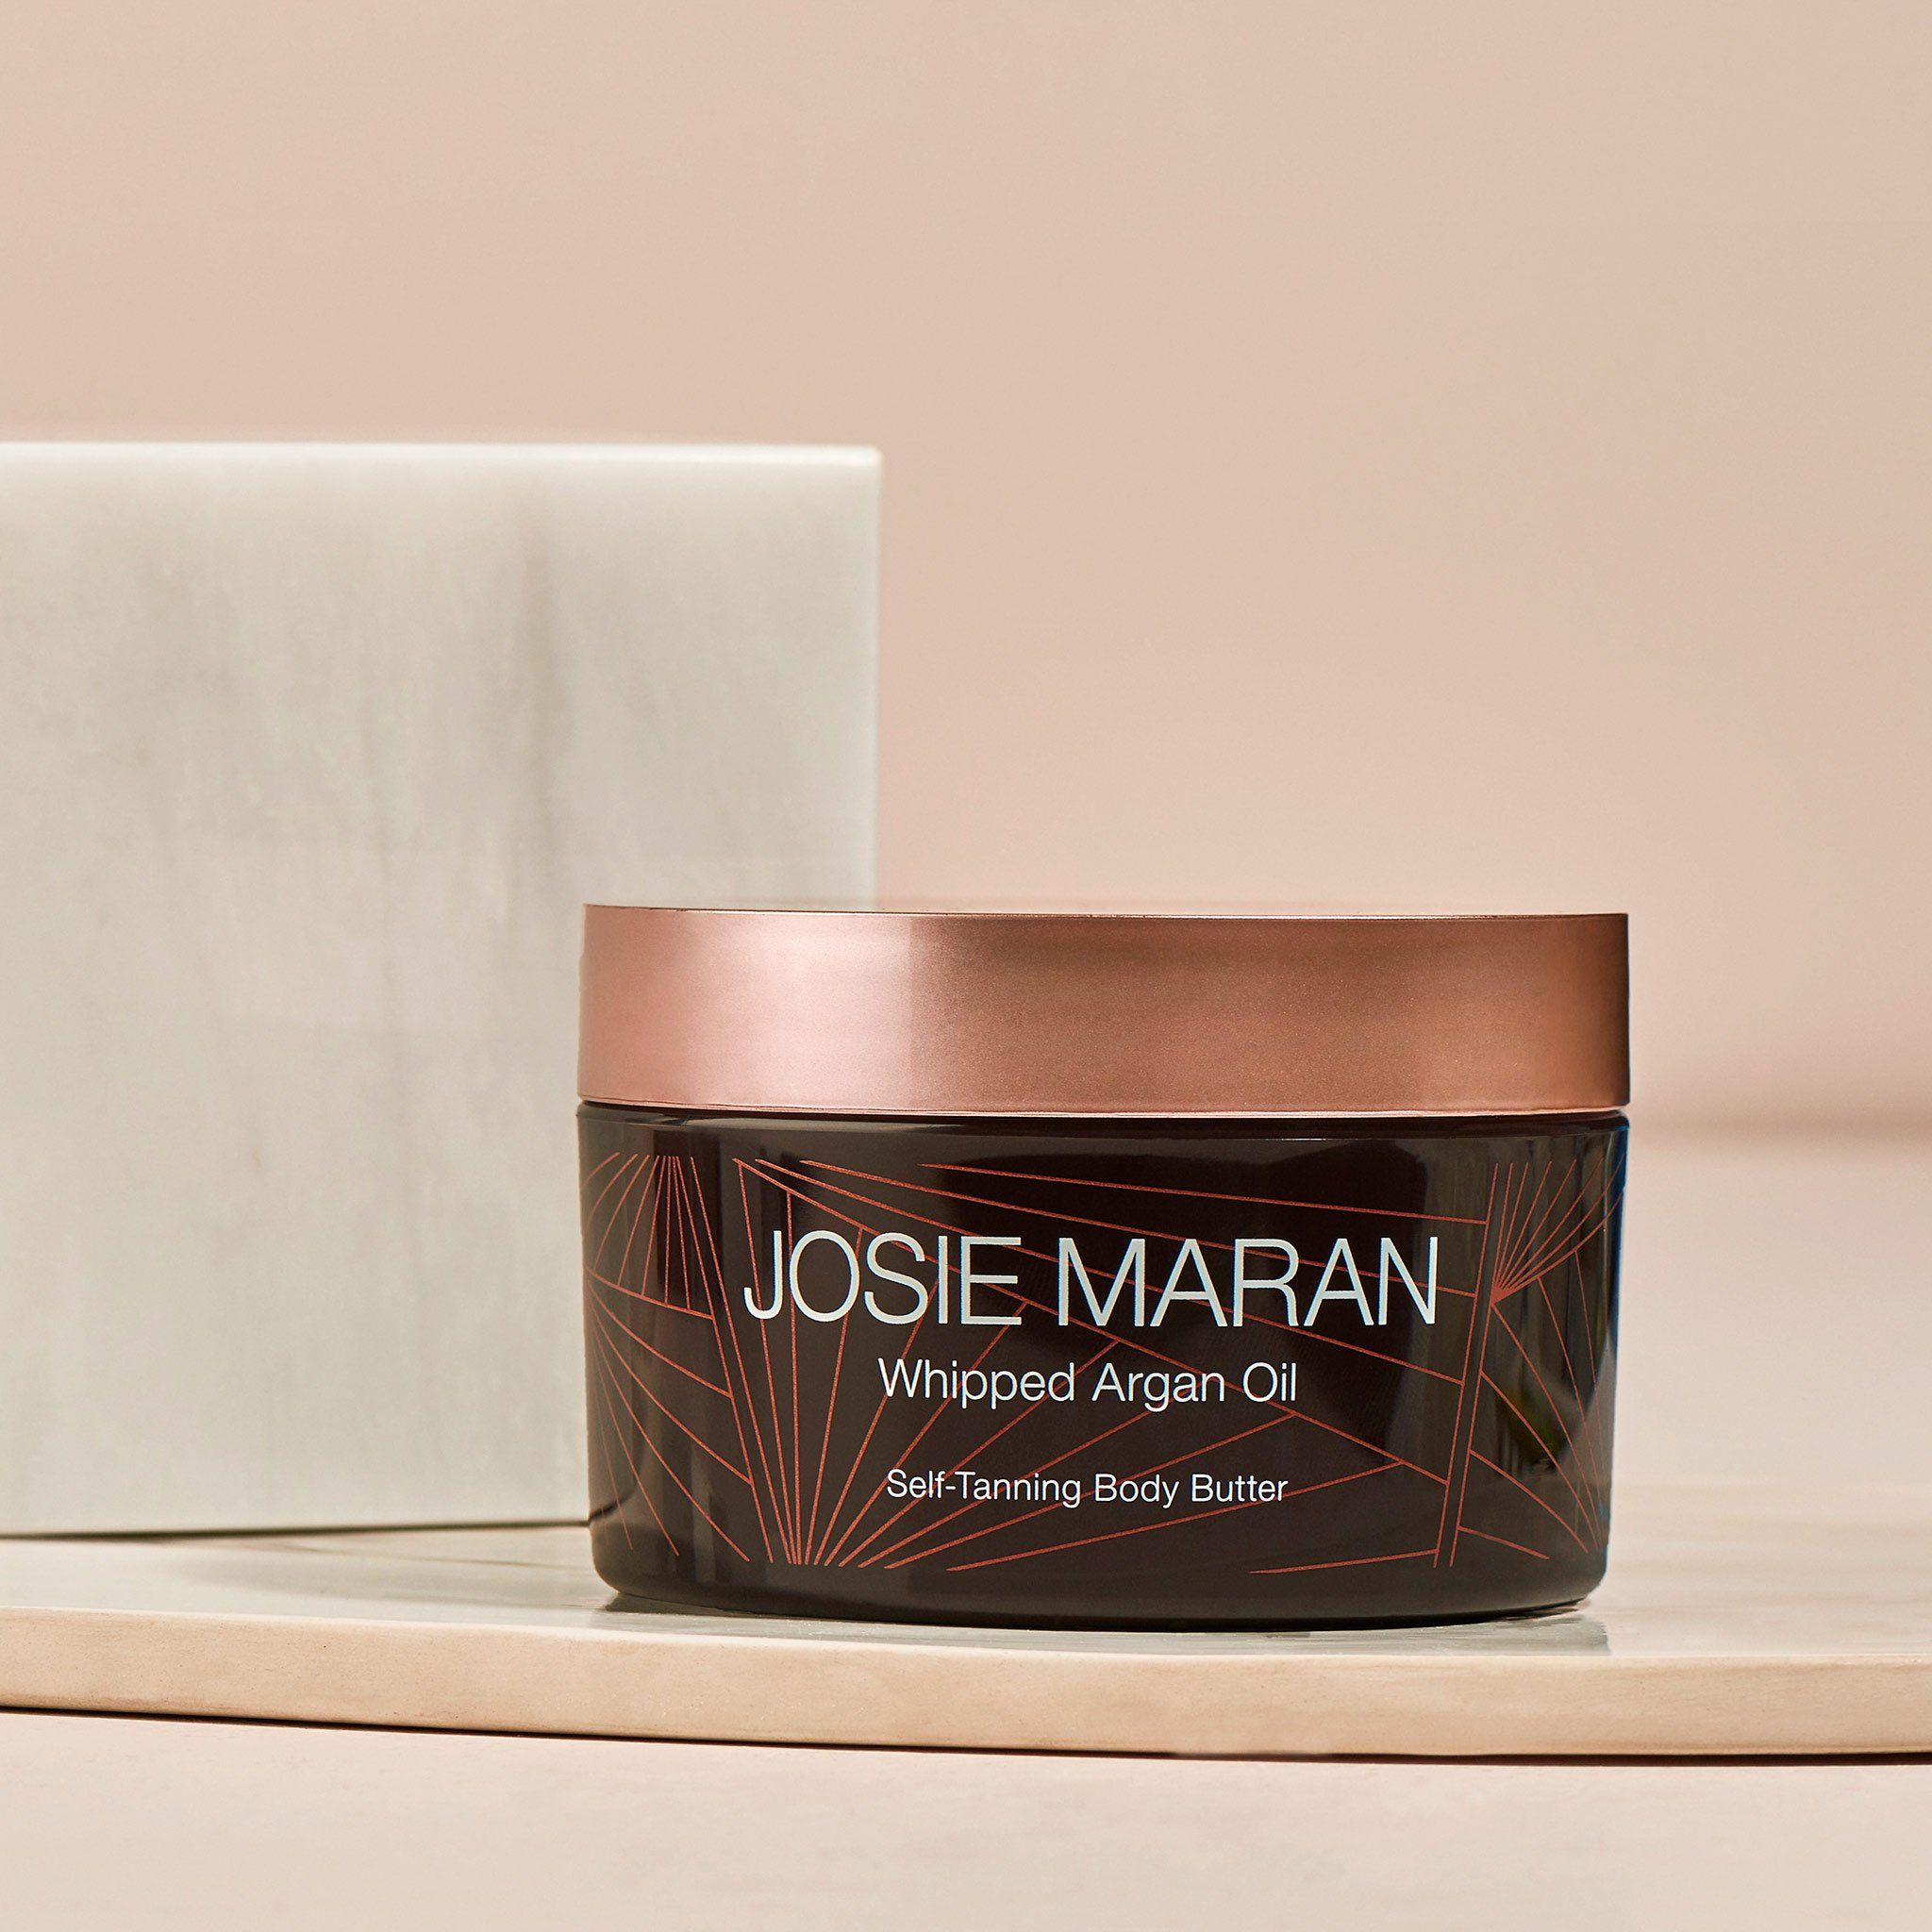 Whipped Argan Oil Self-Tanning Body Butter